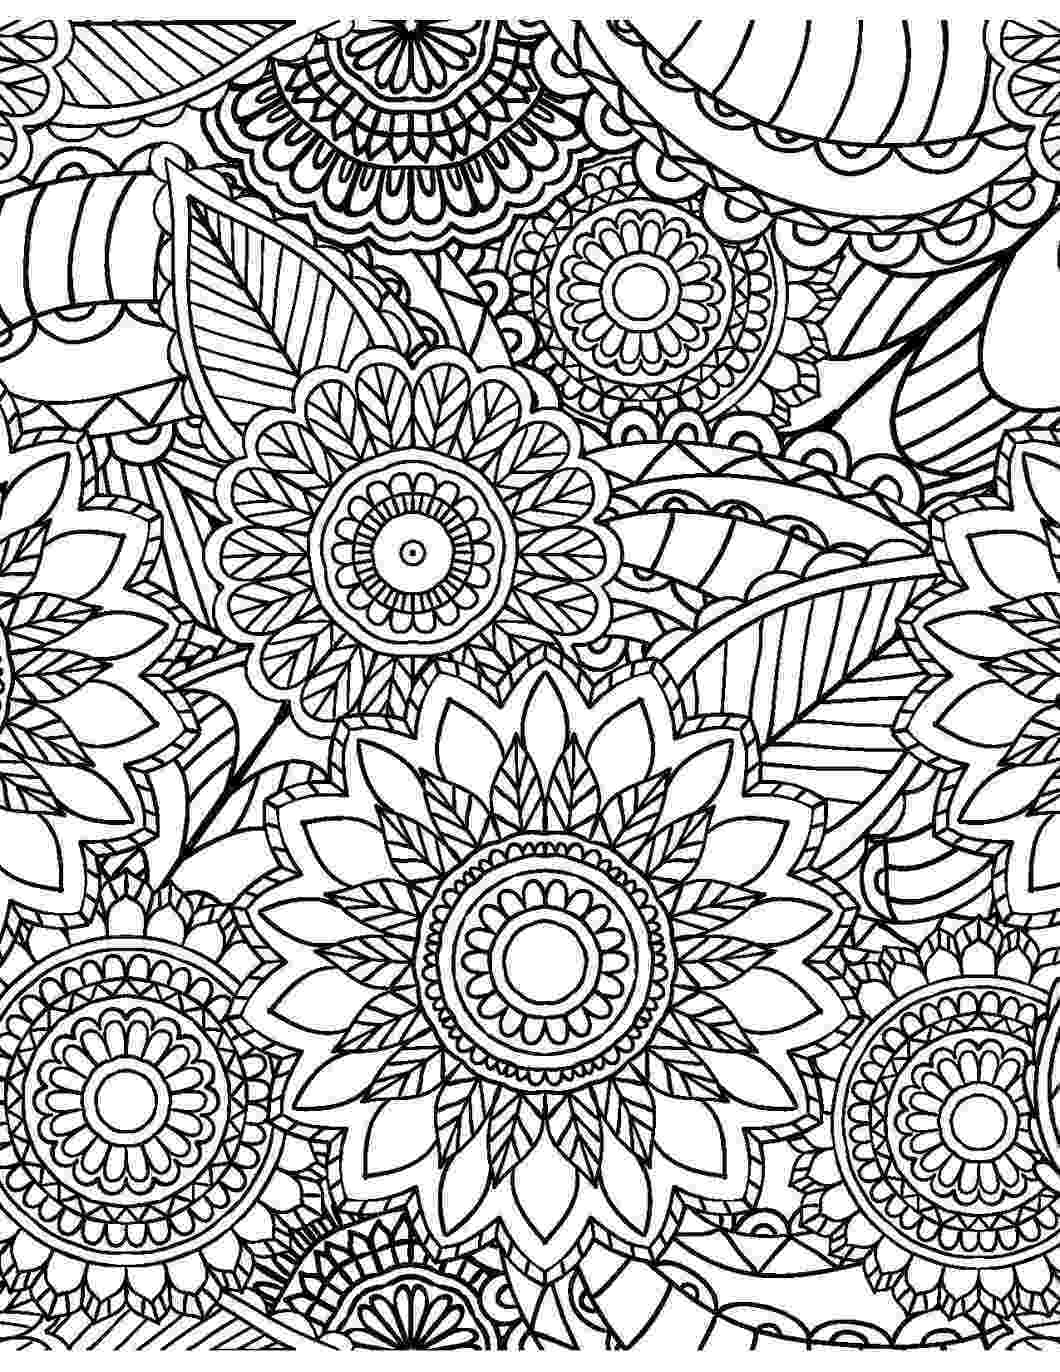 coloring patterns floral pattern coloring page free printable coloring pages patterns coloring